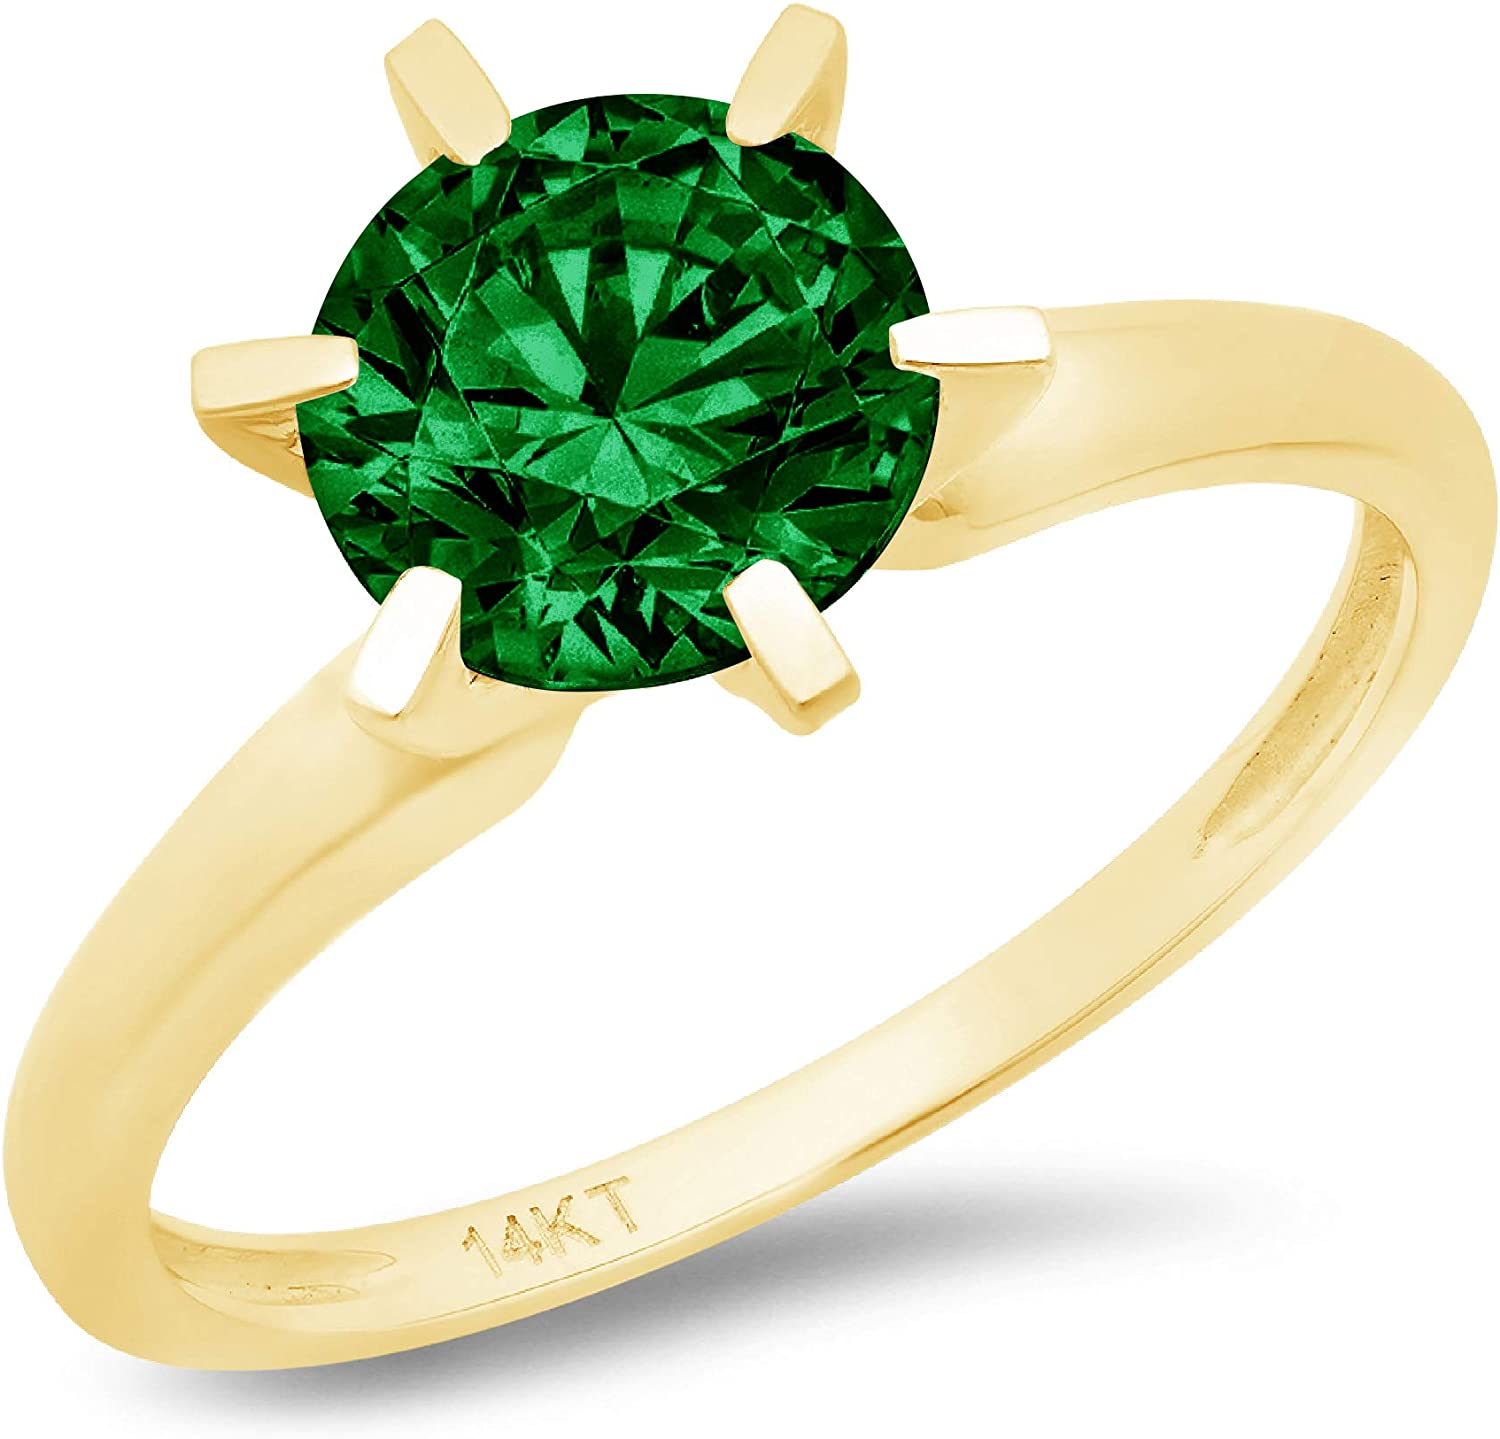 1.9ct Brilliant Round Cut Solitaire Flawless Simulated Cubic Zirconia Green Emerald Ideal VVS1 6-Prong Engagement Wedding Bridal Promise Anniversary Designer Ring in Solid 14k yellow Gold for Women